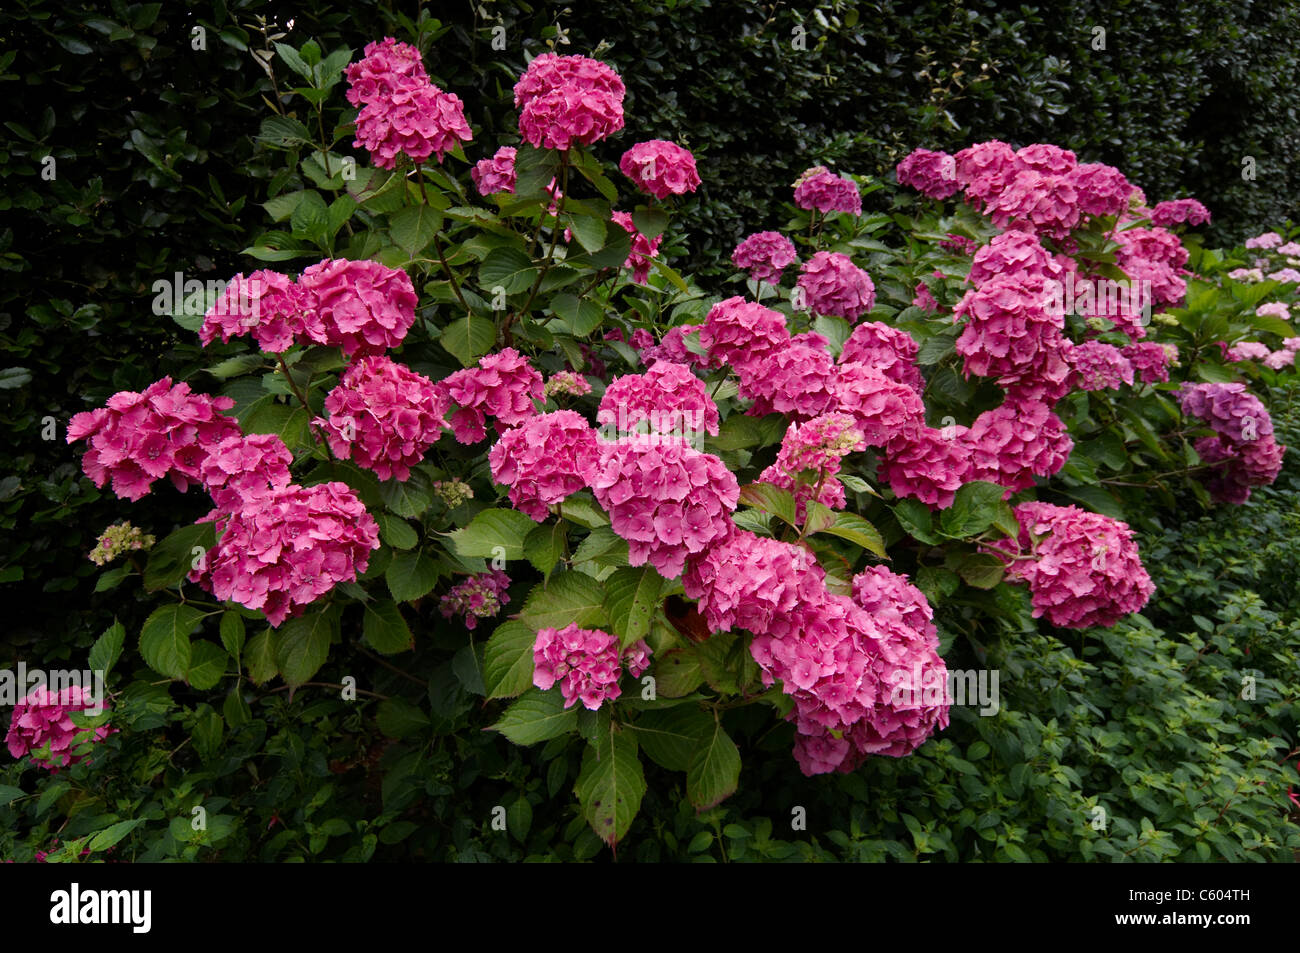 Hydrangeas in a country garden border - Stock Image